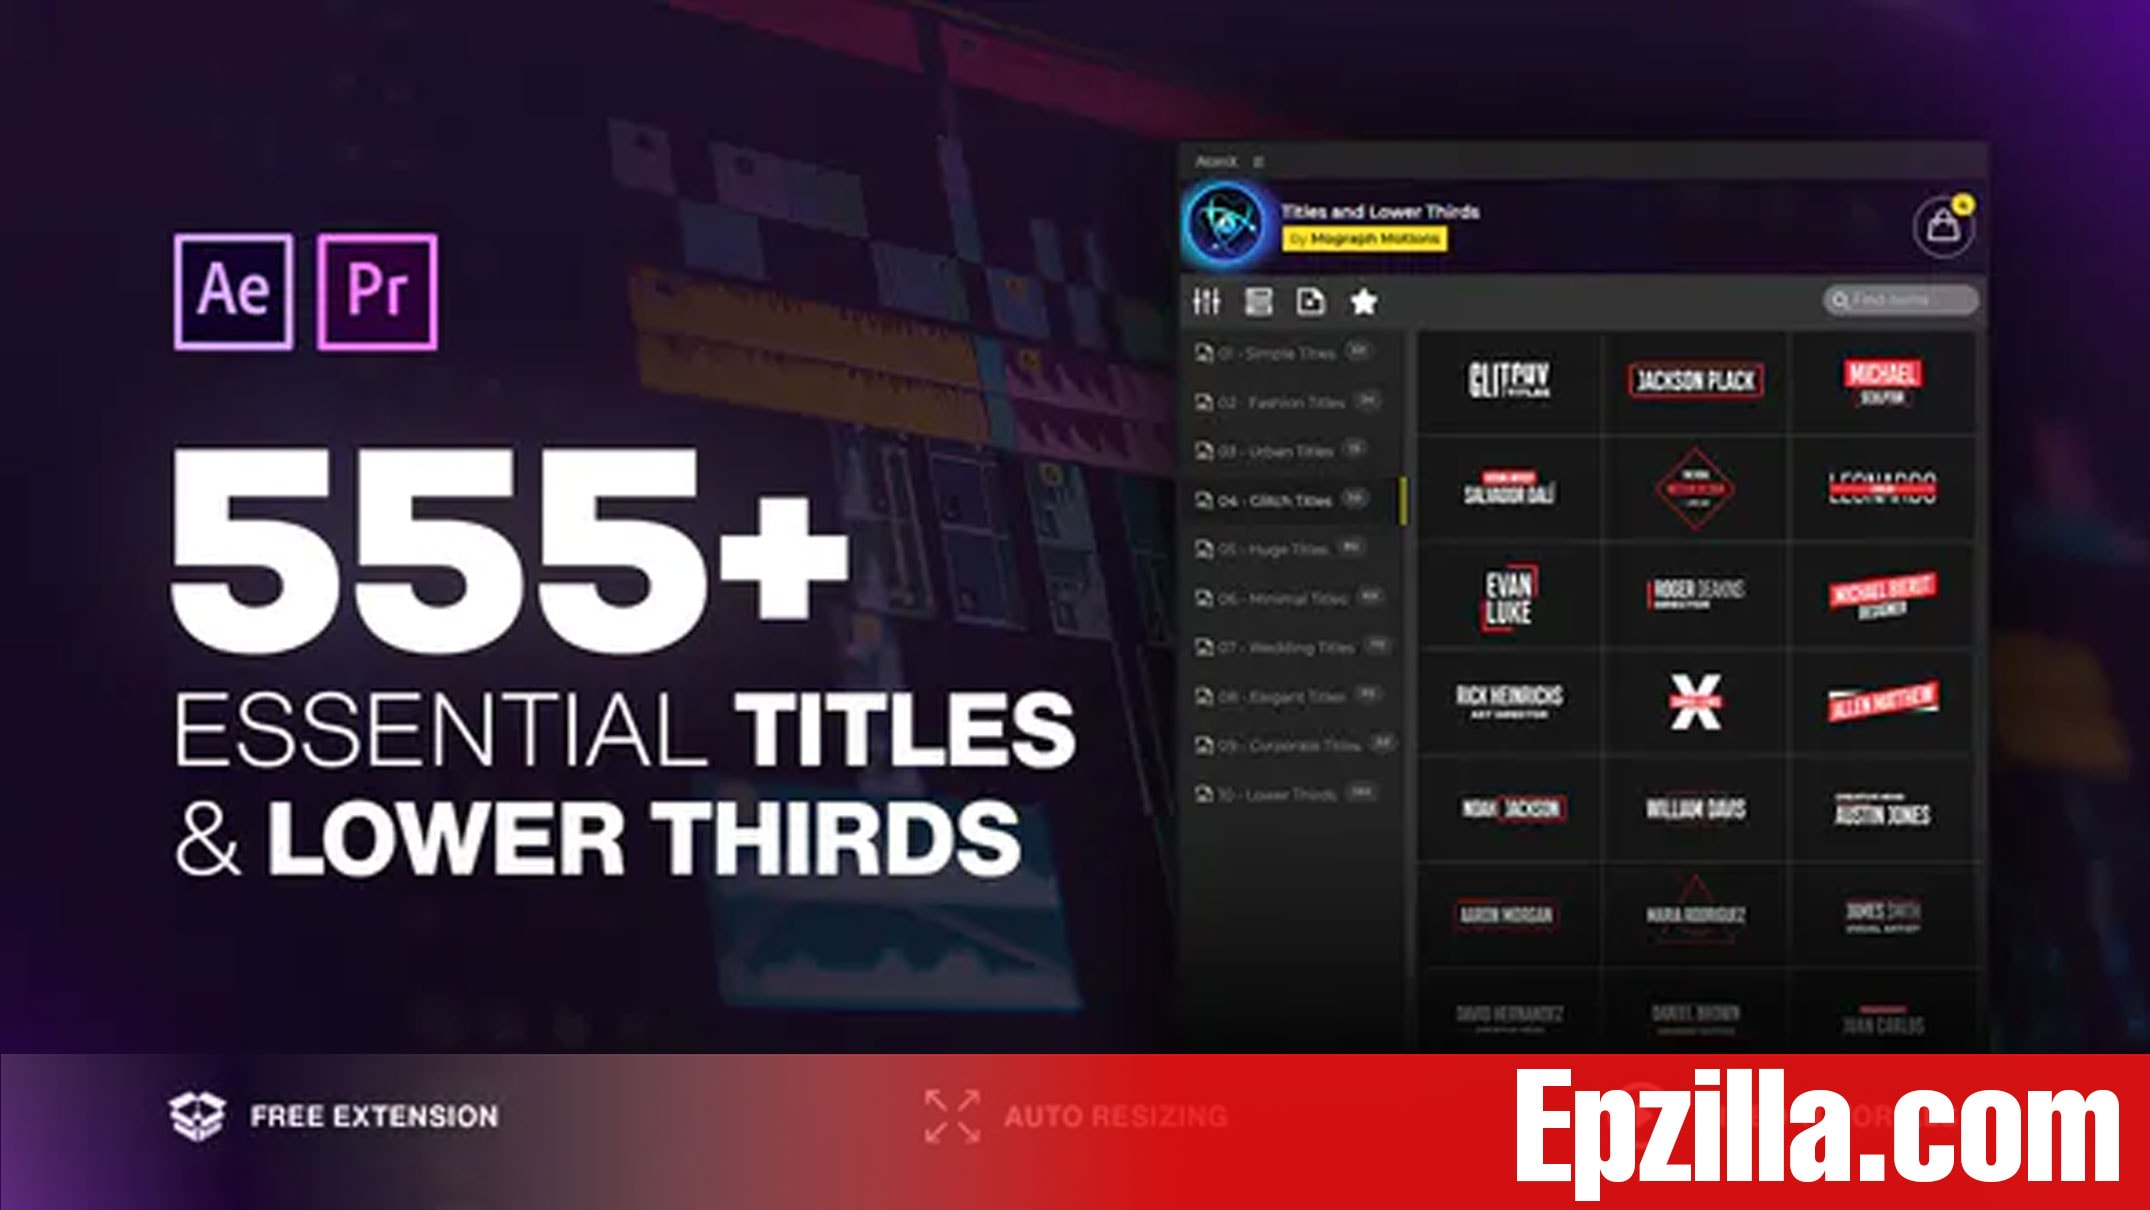 Videohive Shock Motion Graphics Pack - ae-premier